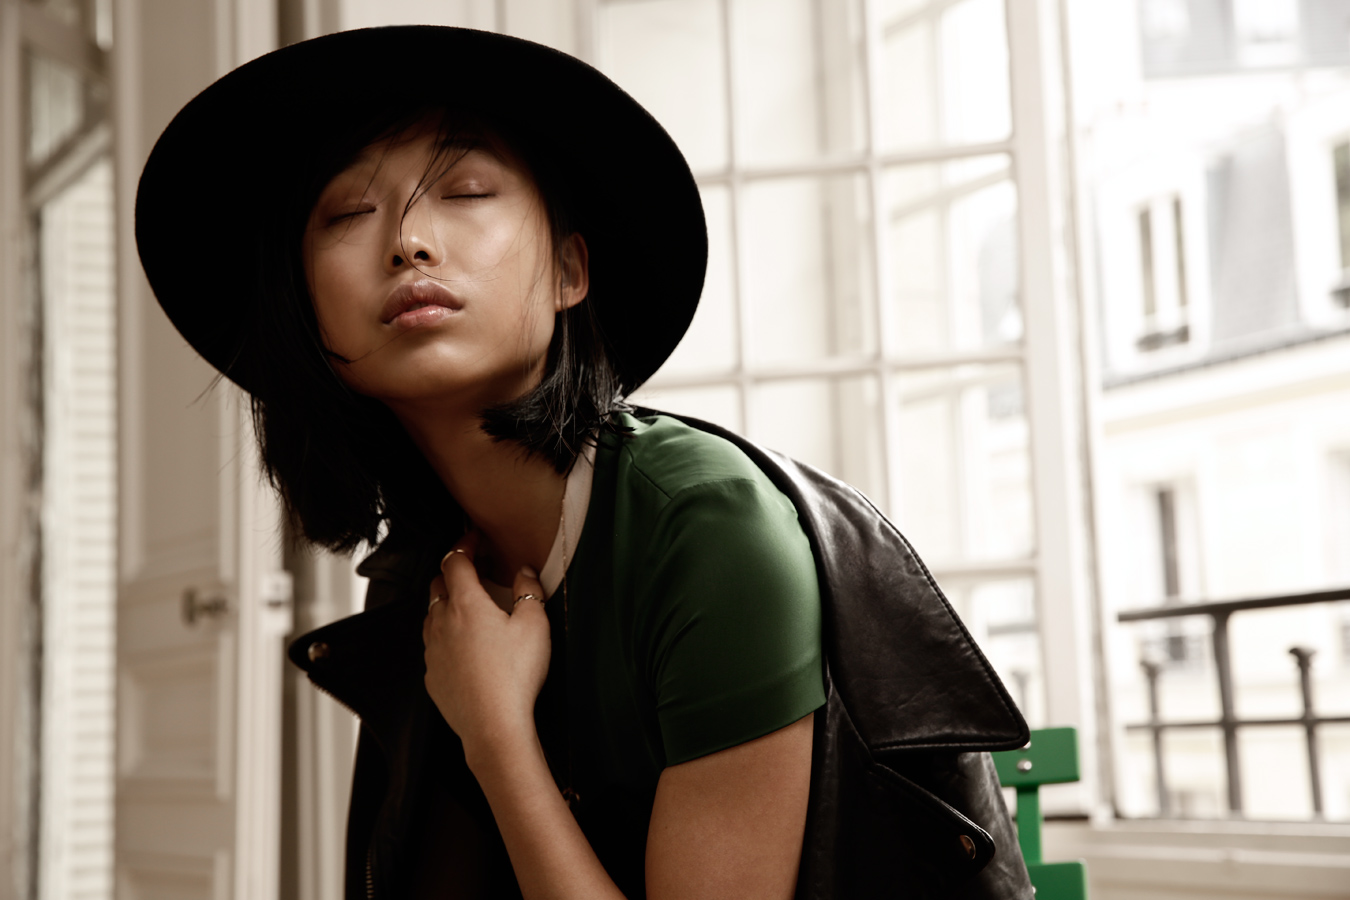 MARGARET ZHANG, PARIS